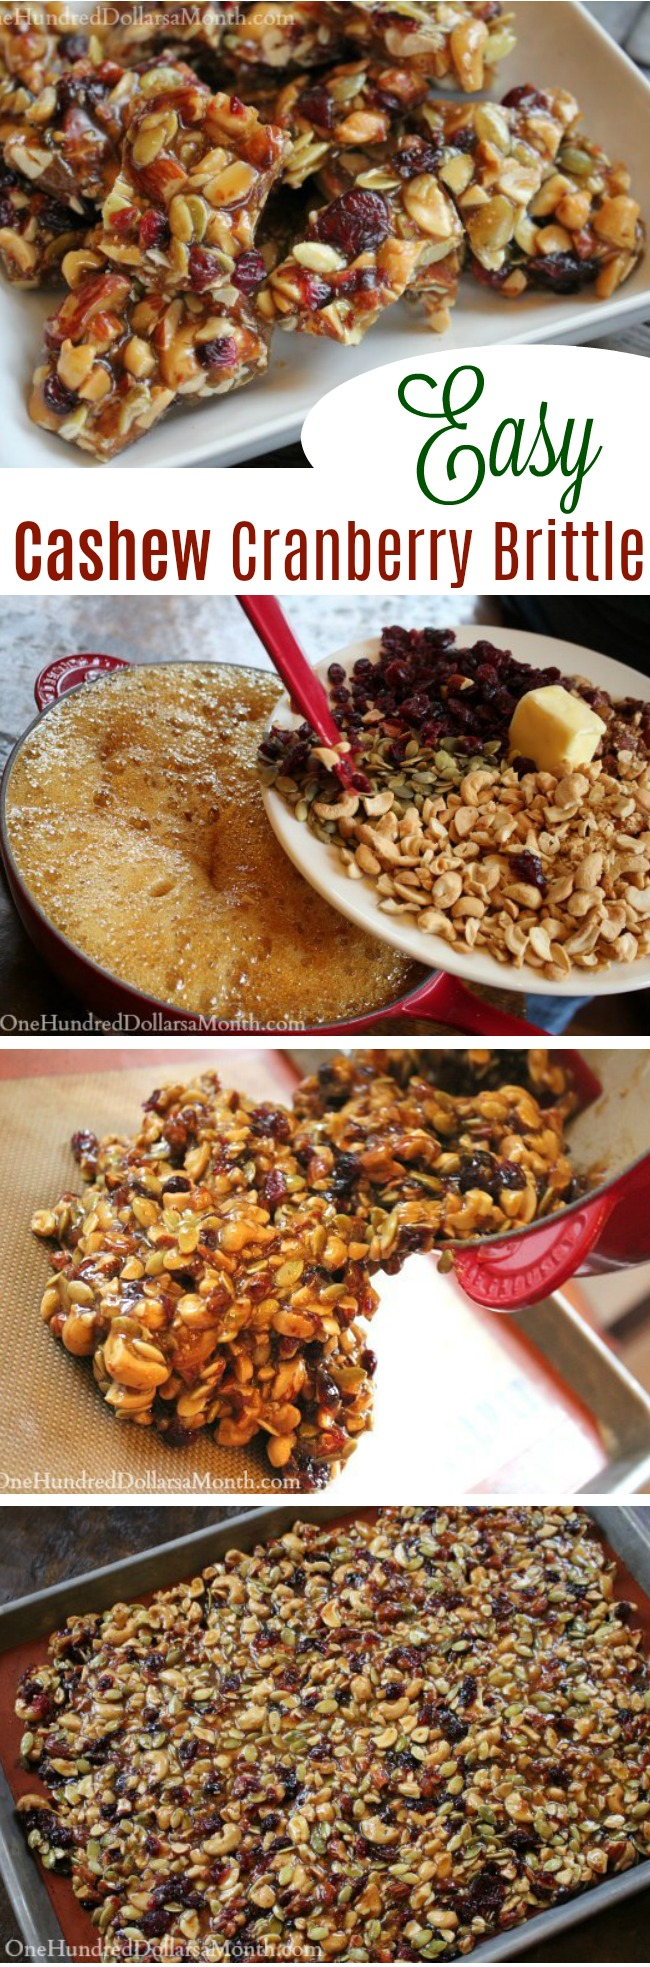 Cashew Cranberry Brittle